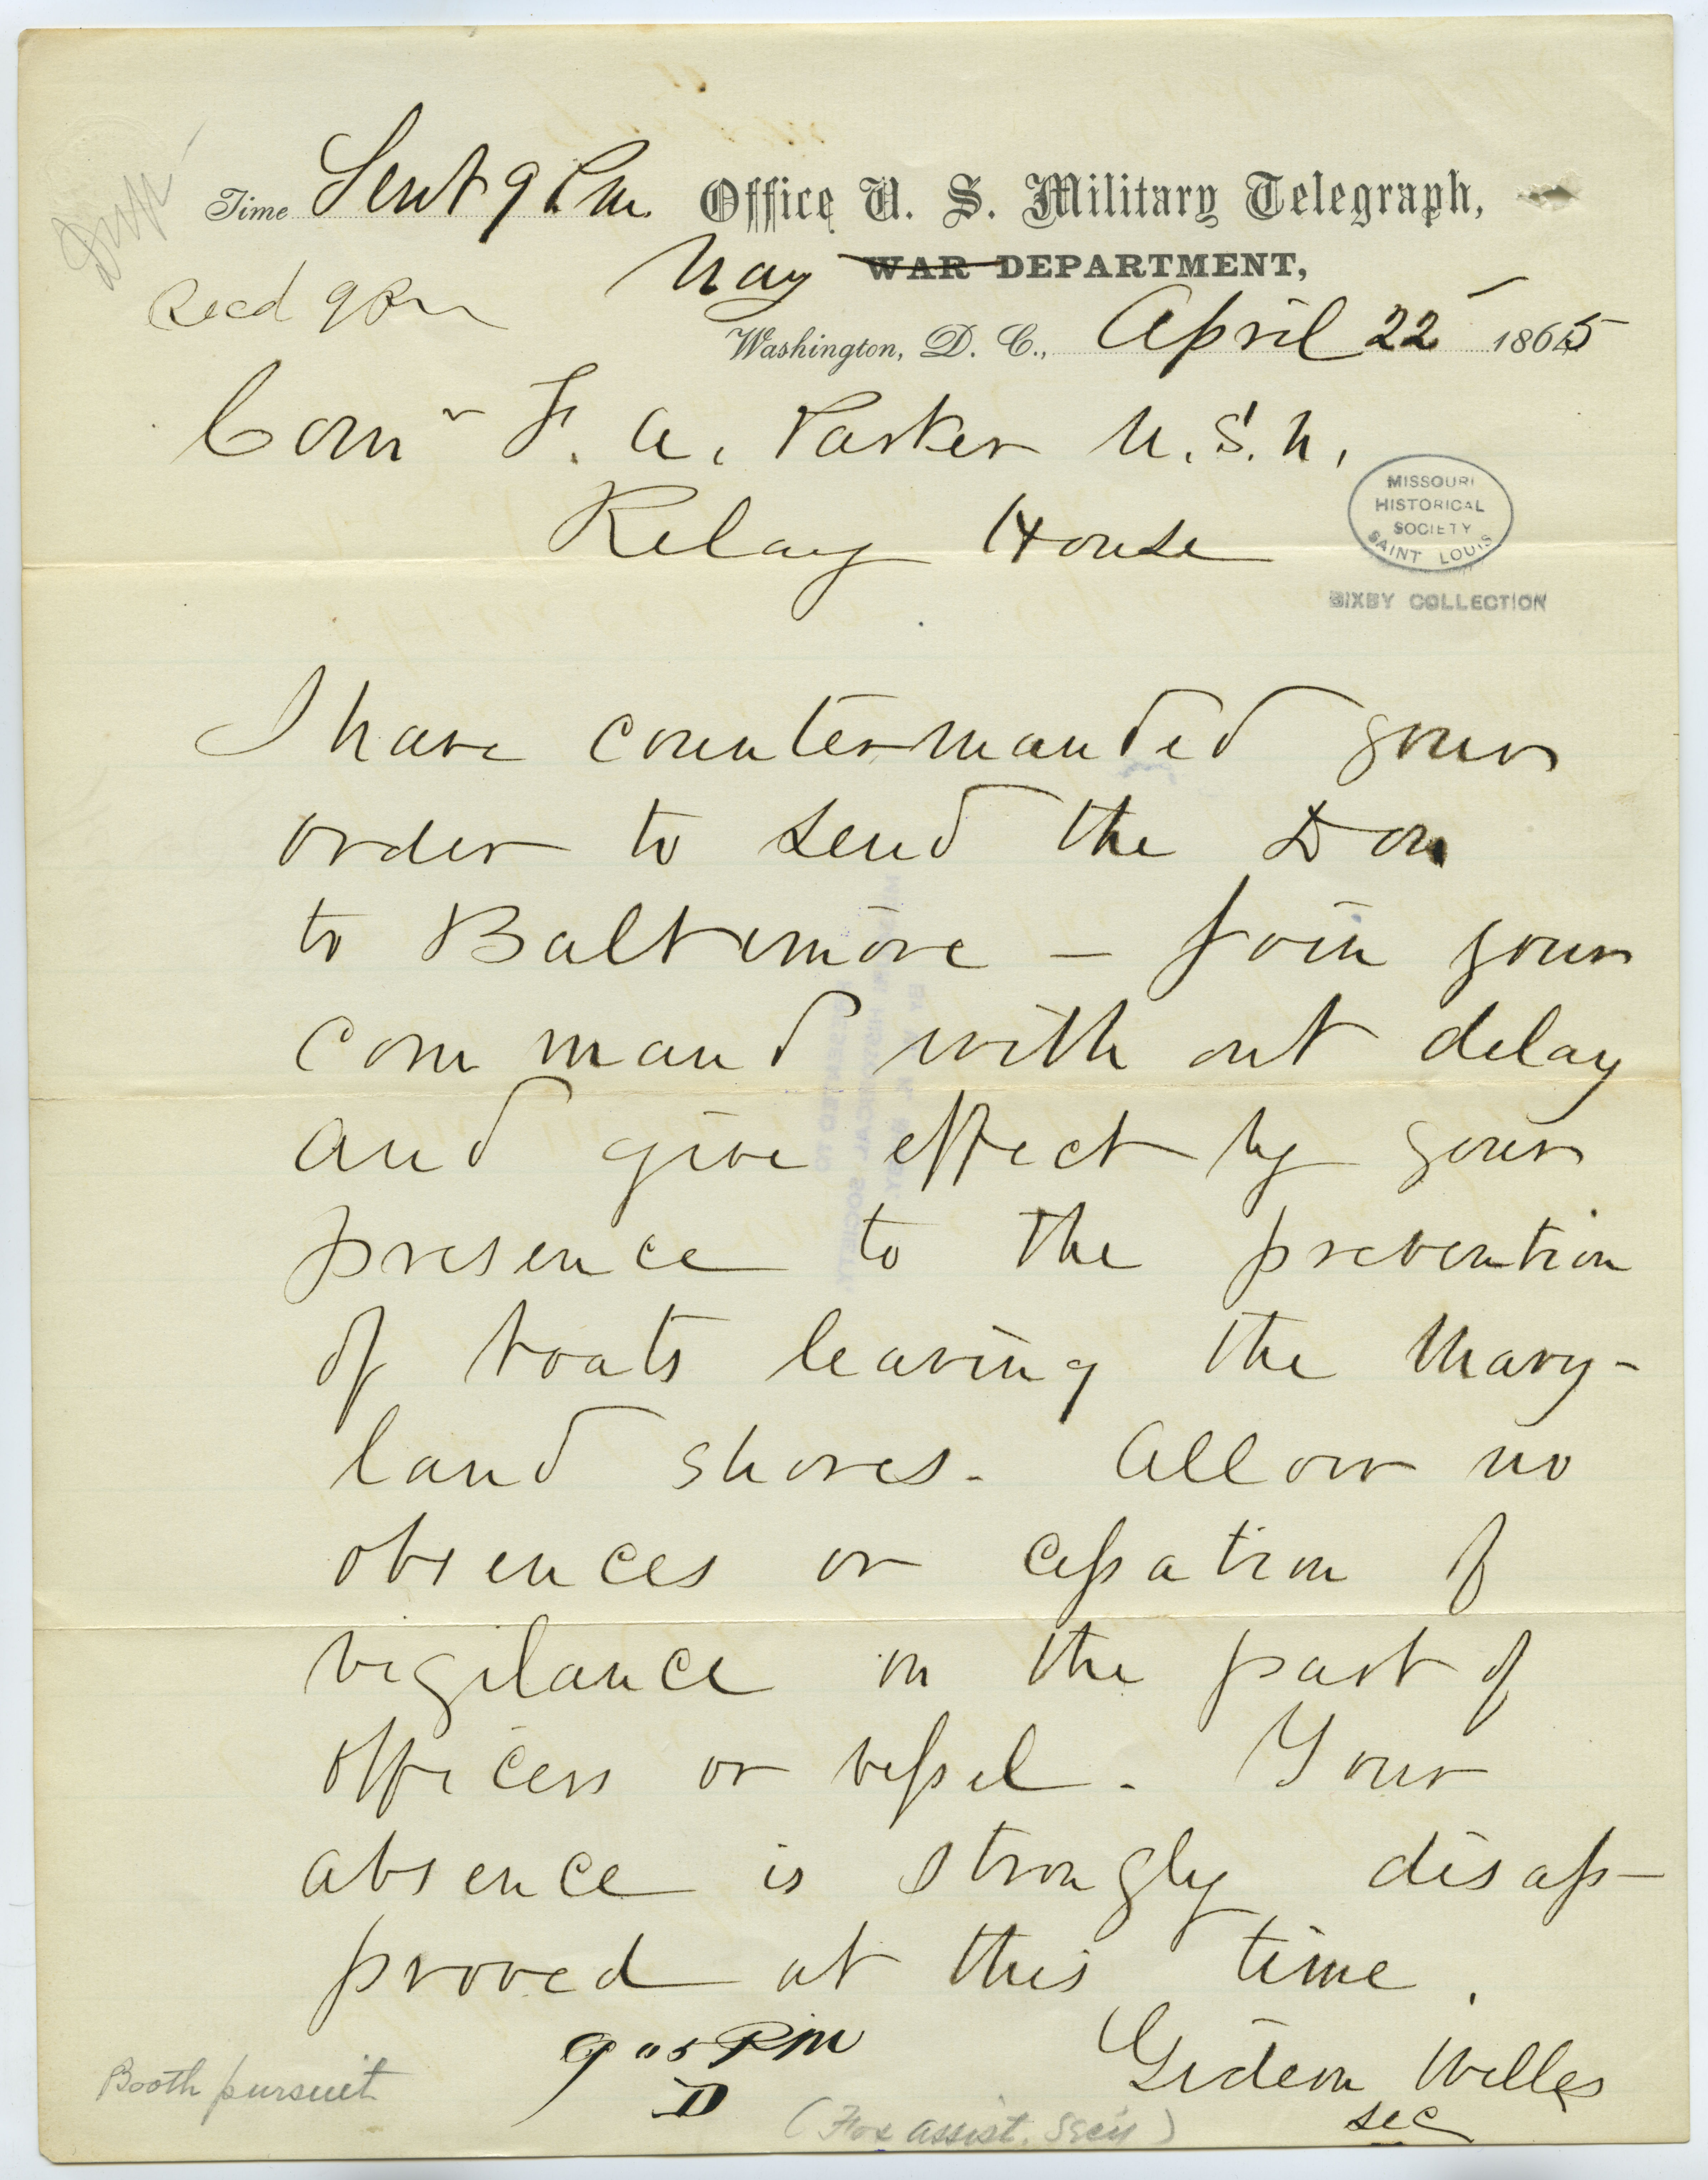 Contemporary copy of telegram of Gideon Welles, Office U.S. Military Telegraph, Navy Department, Washington, D.C., to Com. F.A. Parker, U.S.A., Relay House, April 22, 1865